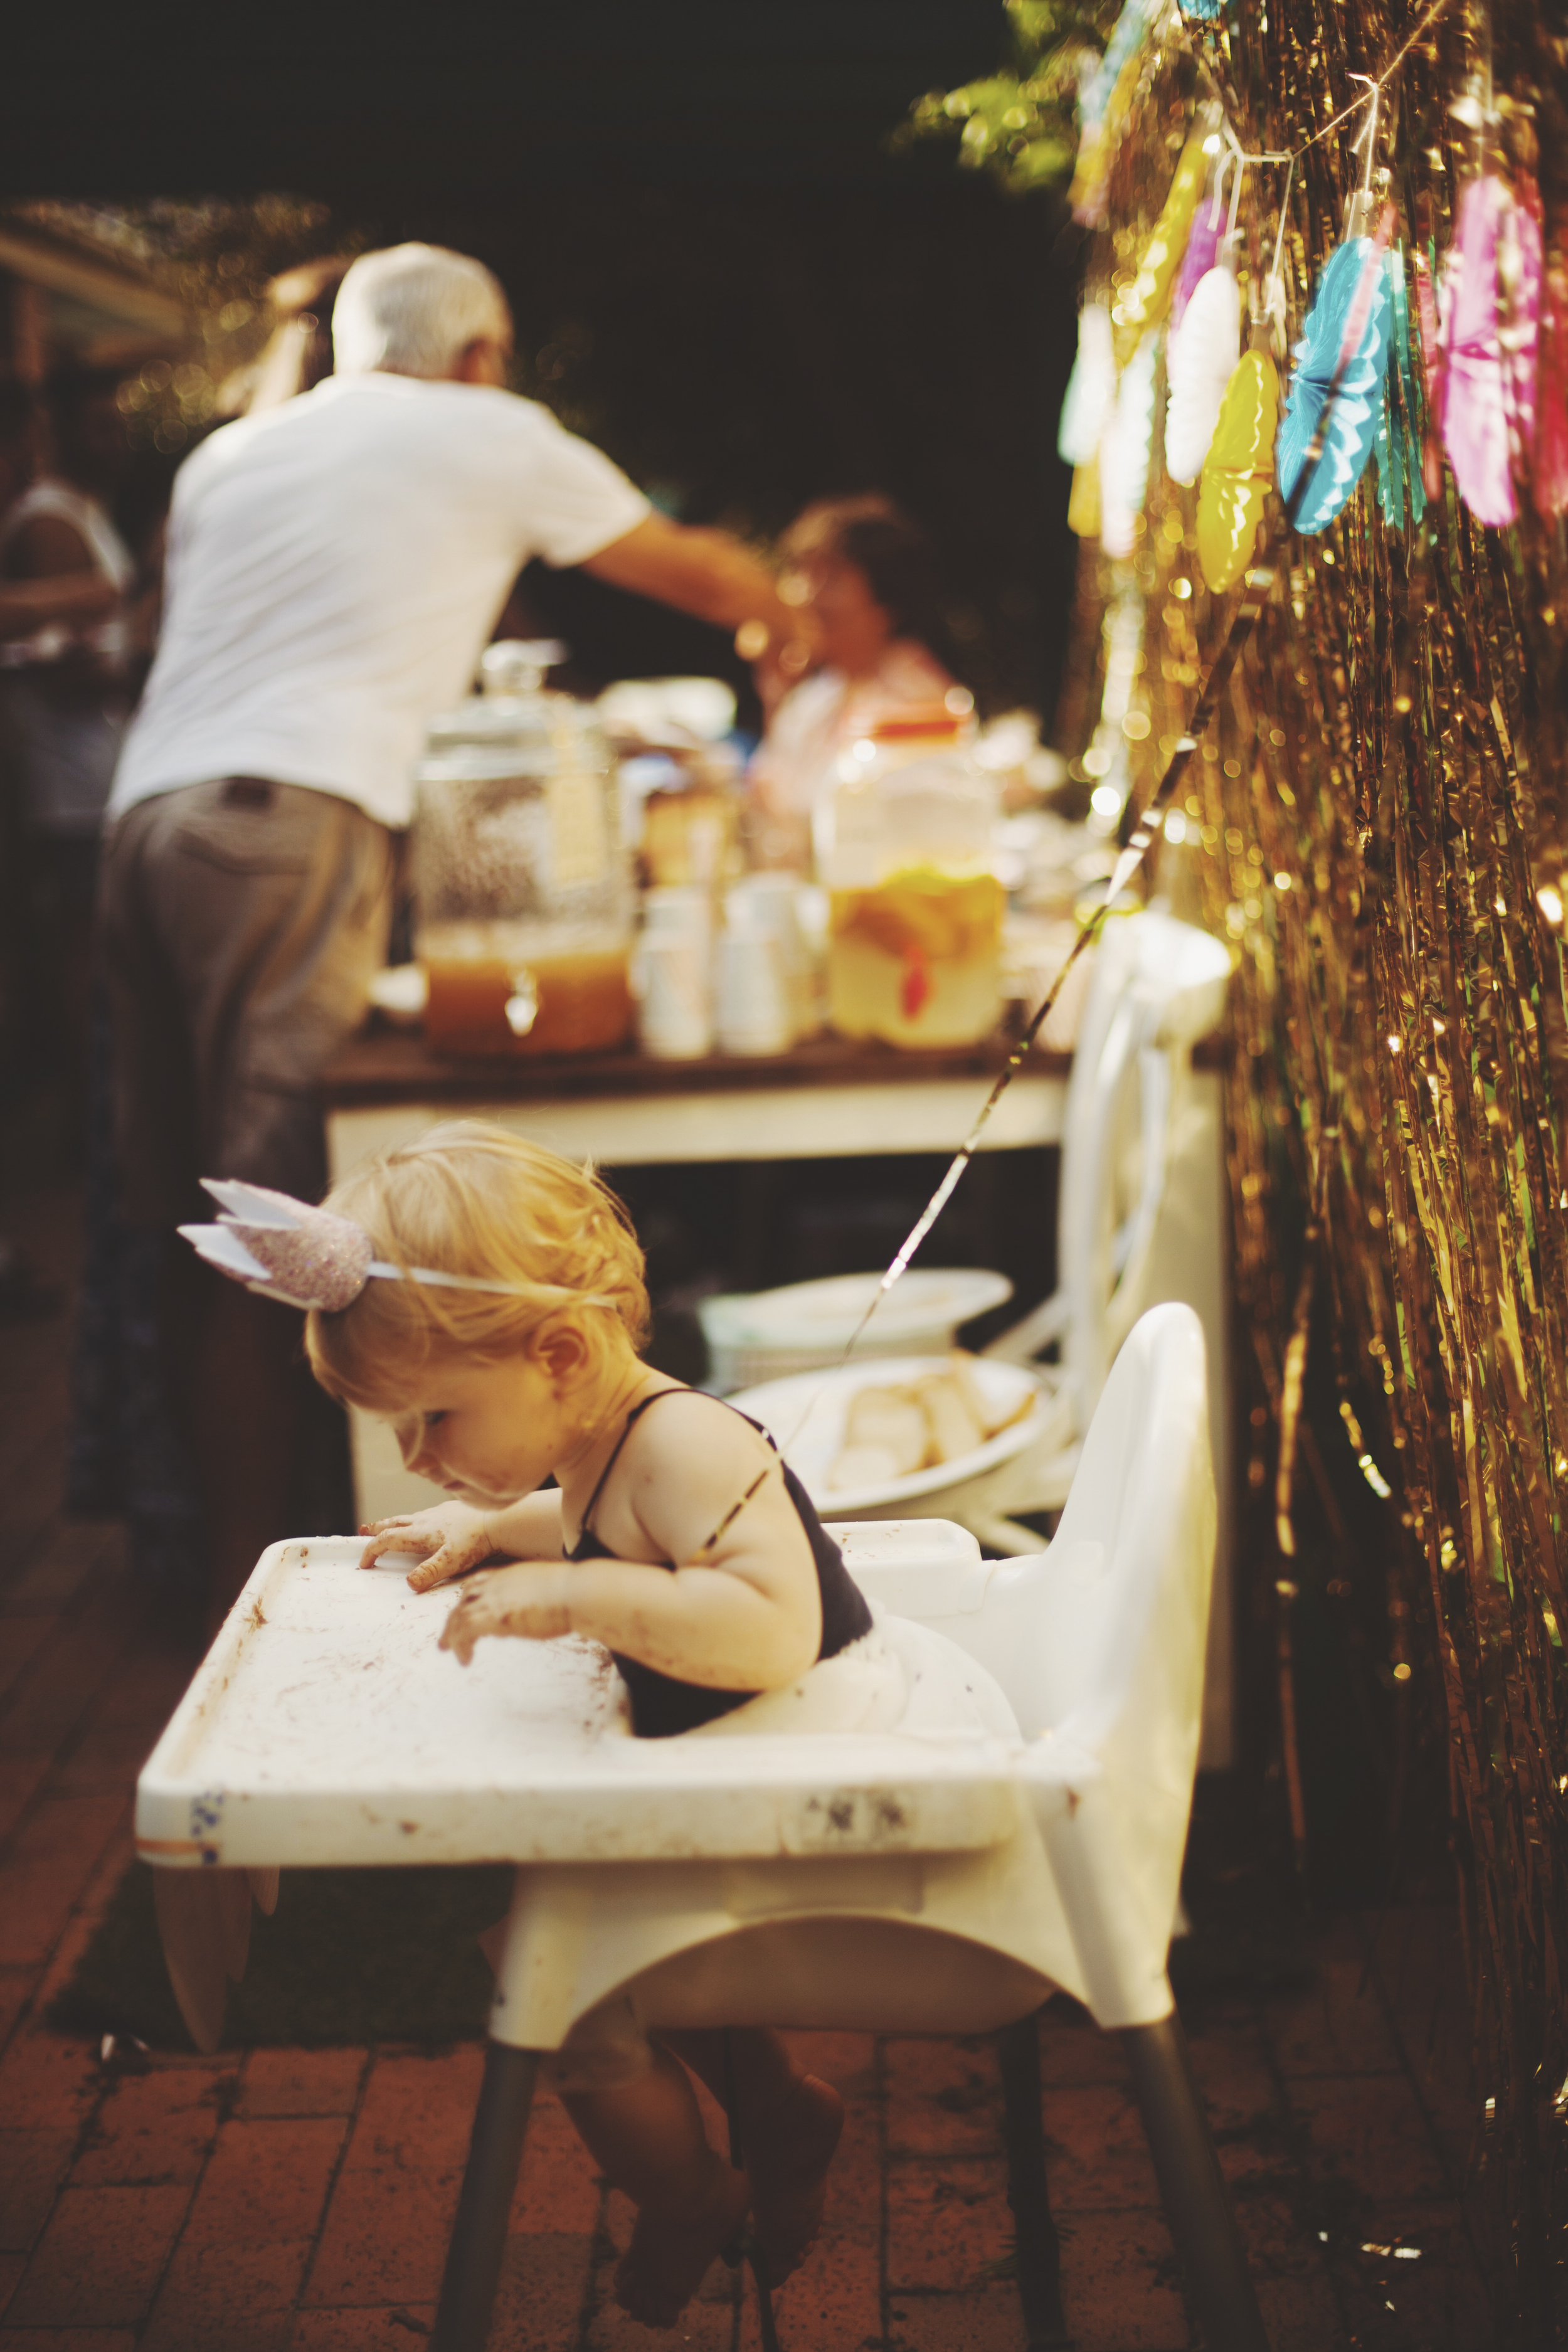 baby in high chair wearing party hat